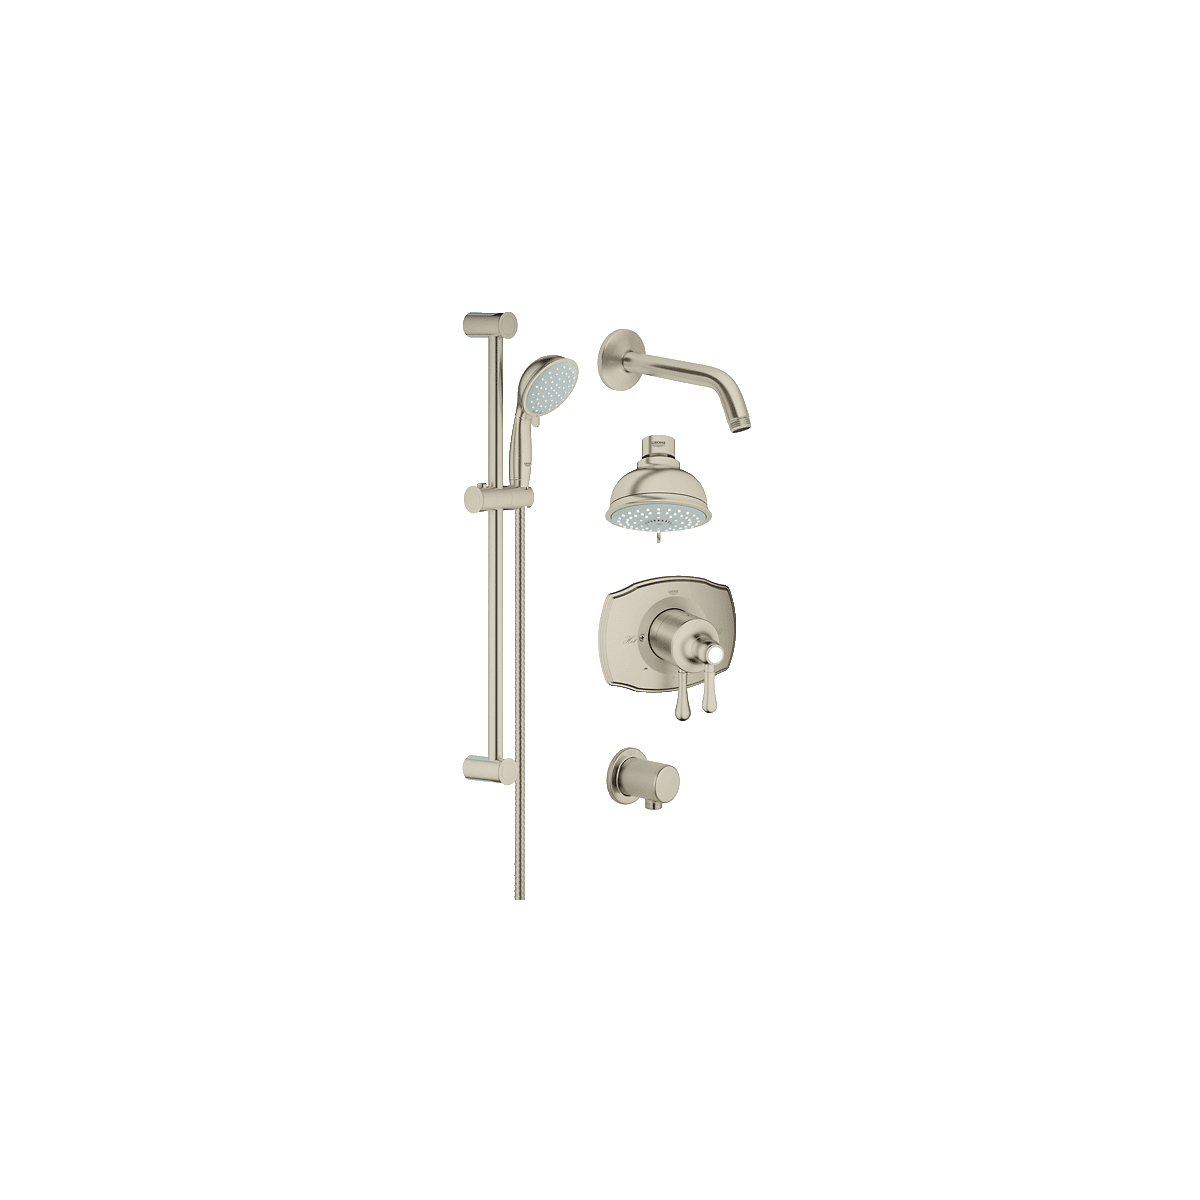 Grohe 35053en0 Brushed Nickel Grohflex Pressure Balanced